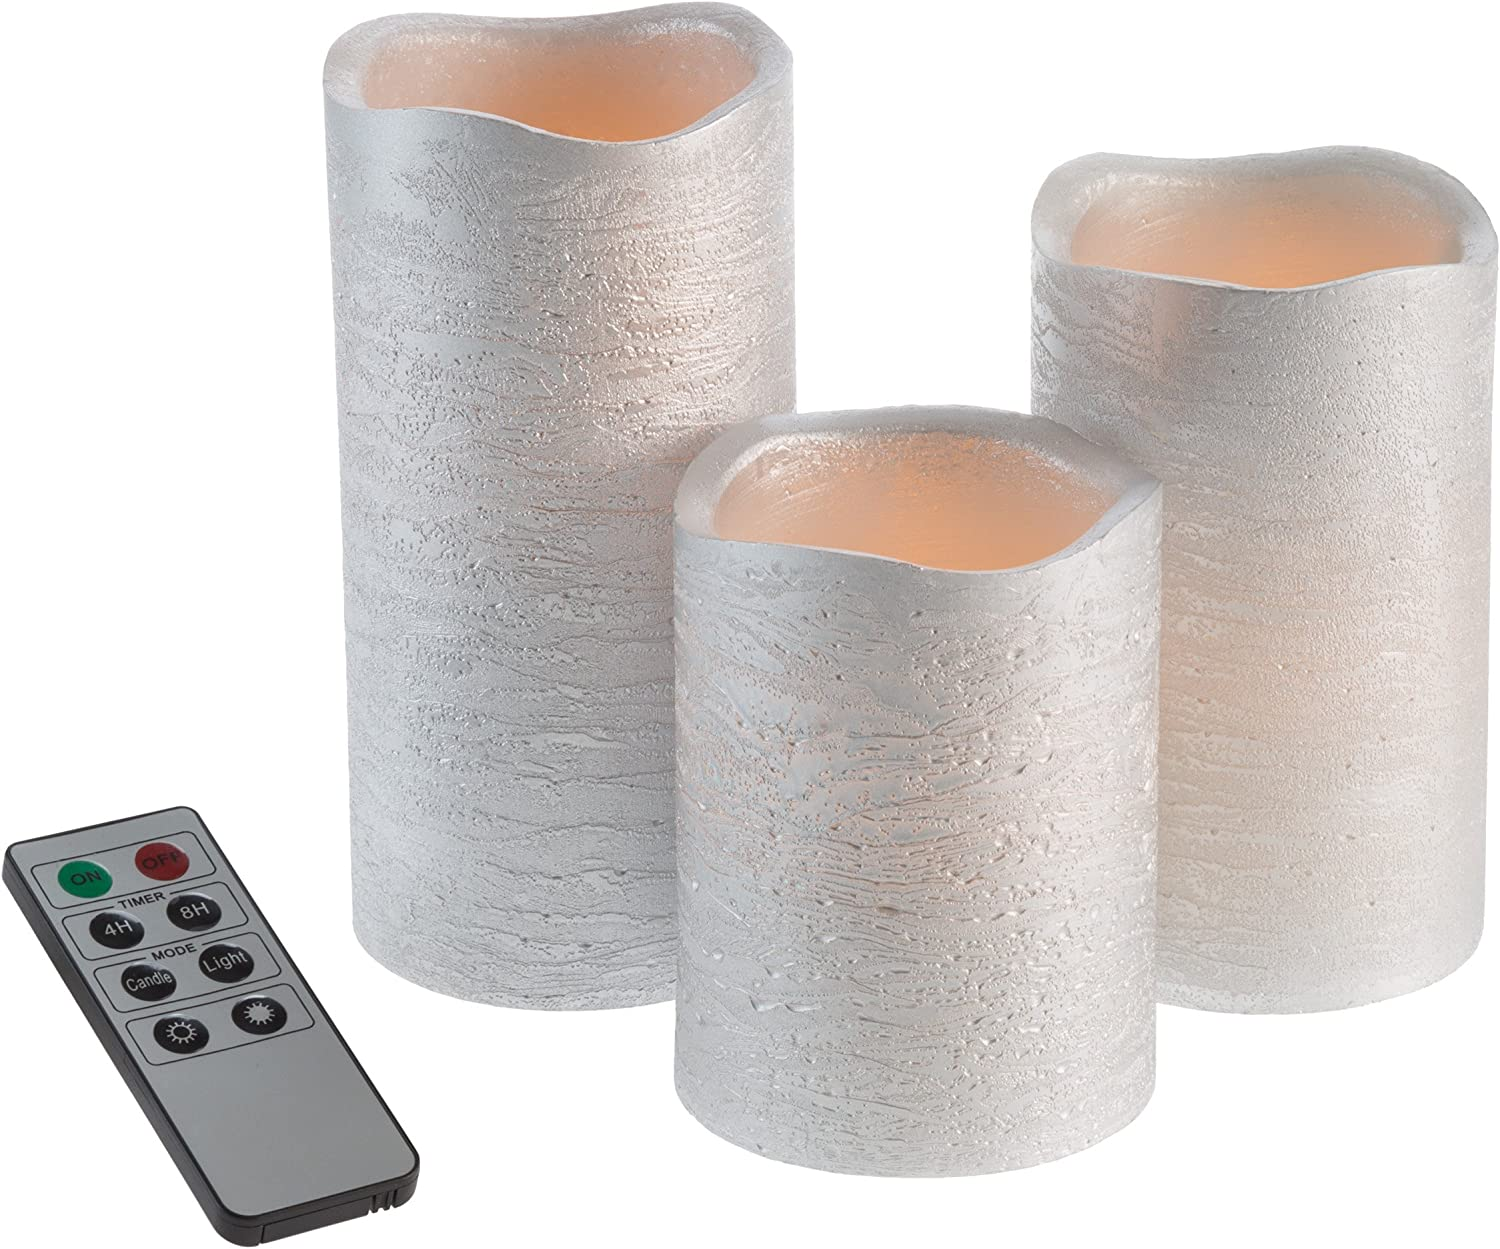 Lavish Home 80-FC1003 Flameless LED Powered Pillar Candles with Remote (Set of 3), Silver Metallic